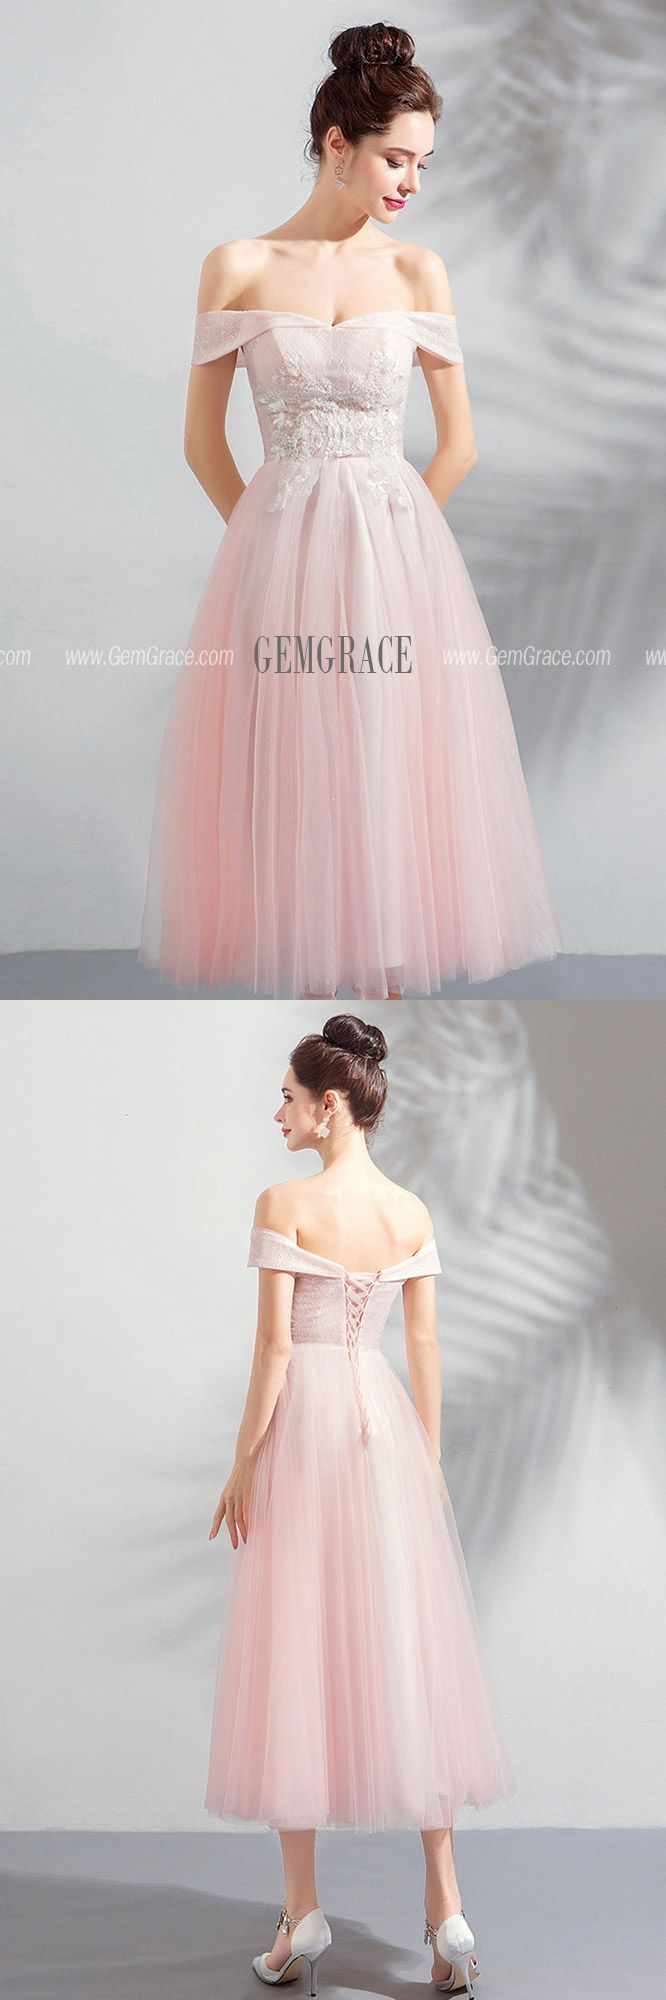 [$98.99] Gorgeous Pink Tulle Off Shoulder Tea Length Party ...